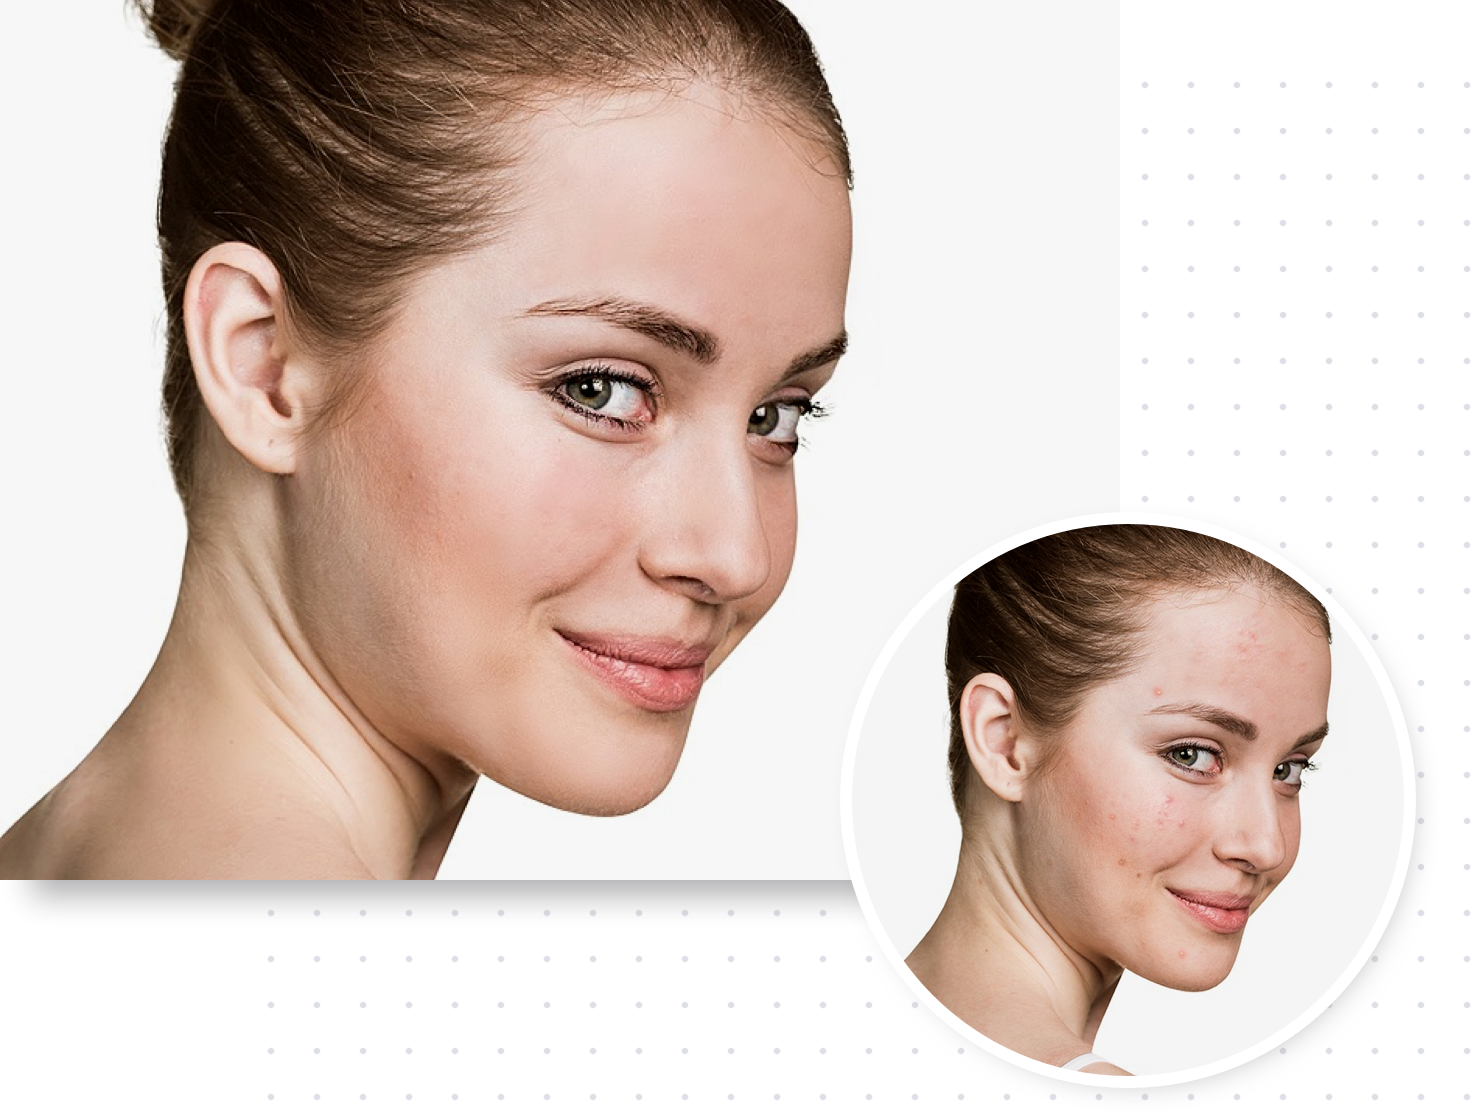 Touch Up | BeFunky: Image Retouching & Face Editor